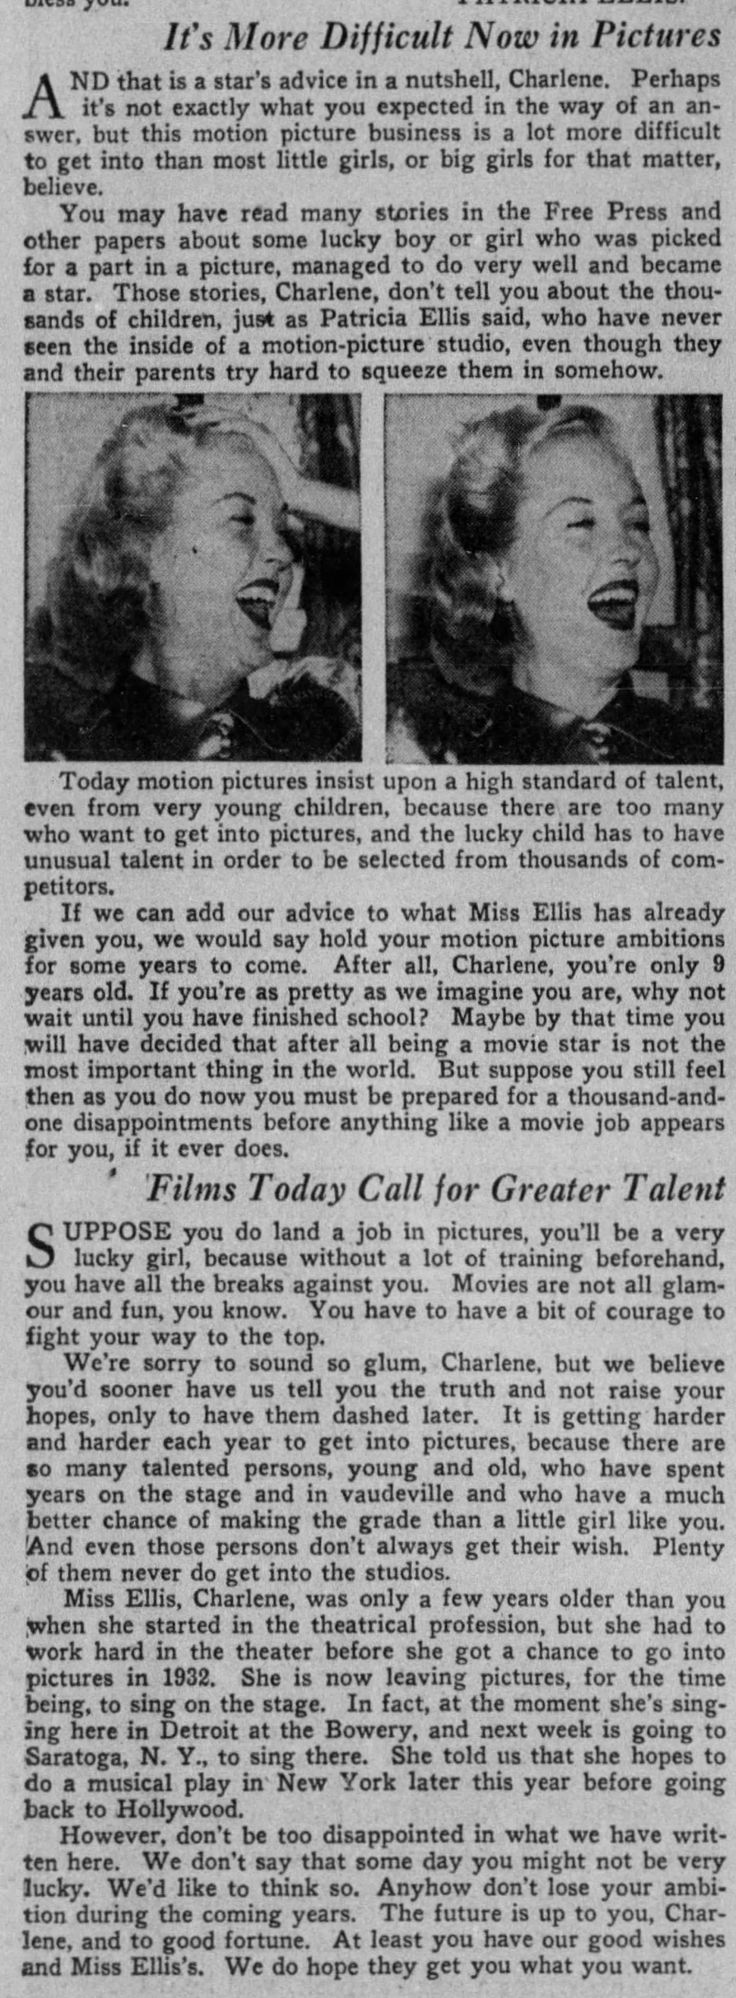 Letter to the Editor of the Detroit Free Press written by 9-year-old Charlene Austin of Algonac, Michigan : How Do I Become a Movie Star? The Detroit Free Press editor adds his two bits to Patricia Ellis's response (Part II). Reading Pat's response in Part I and the editor's comments in Part II you get a glimpse of how competitive Hollywood had become by 1939, considered by many to be the Golden Age of Hollywood's most golden year. (Detroit Free Press, 28 July 1940, p.30, Detroit, Michigan).